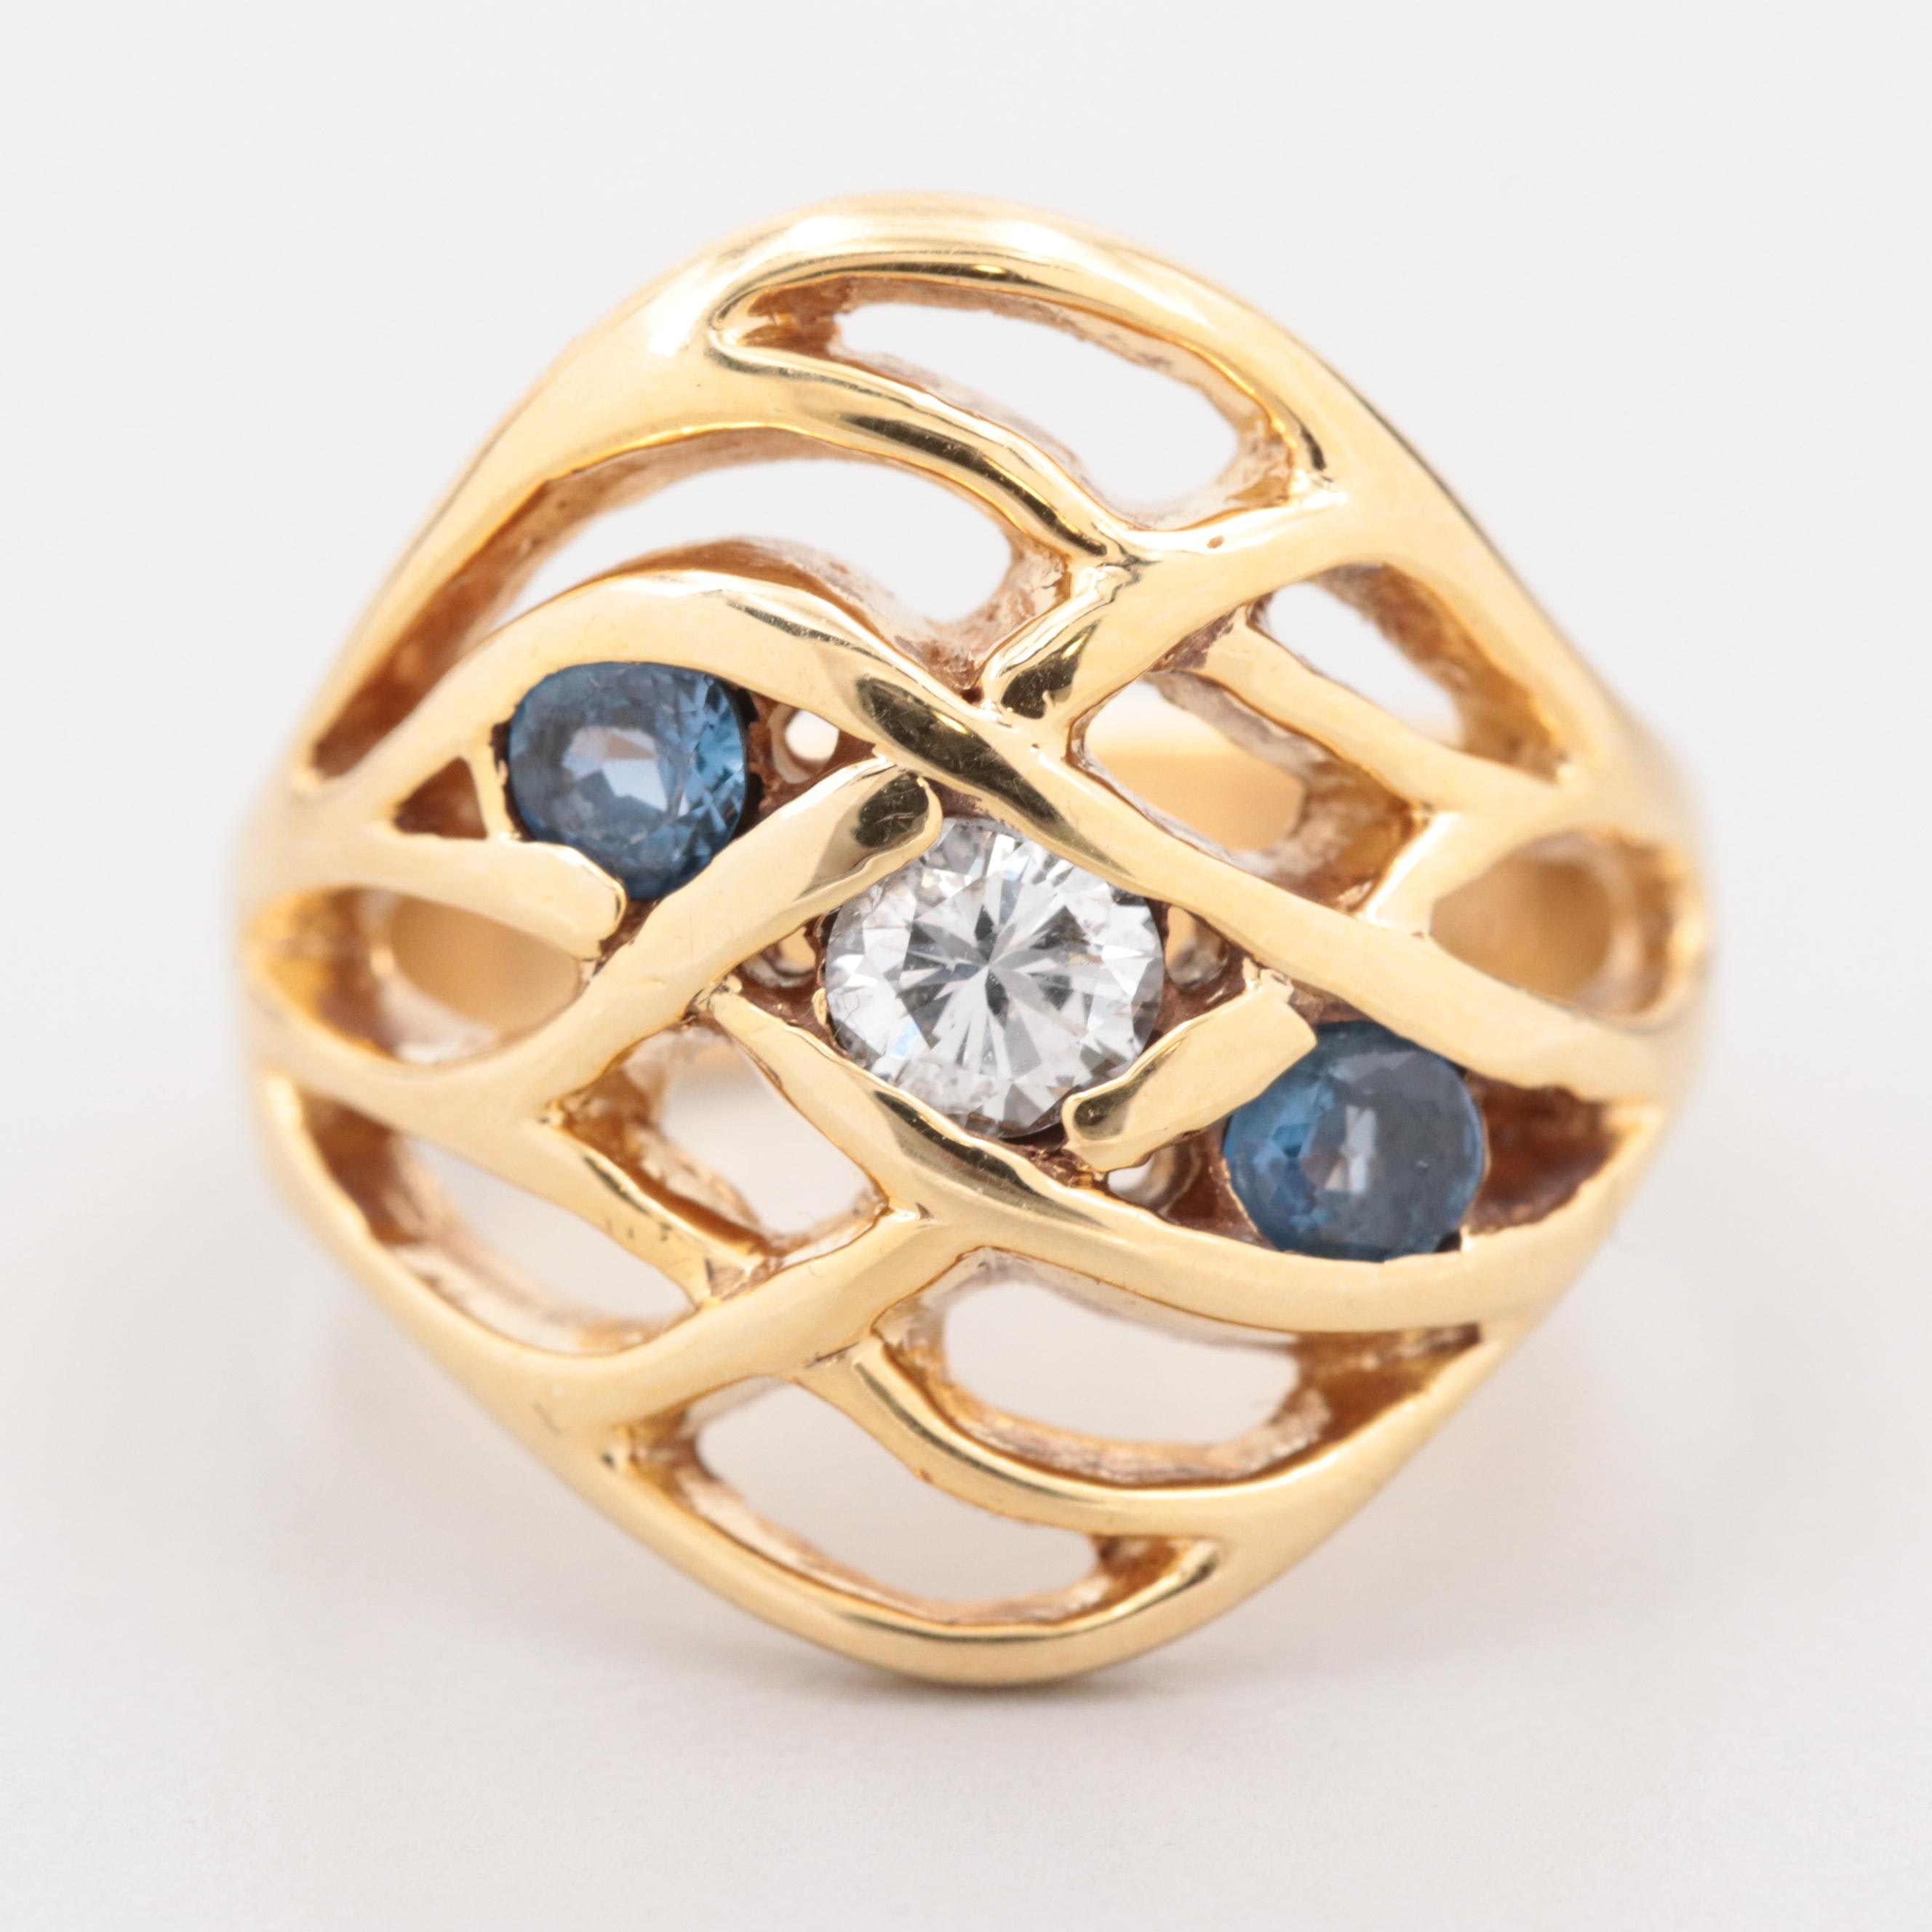 14K Yellow Gold Diamond and Blue Sapphire Ring